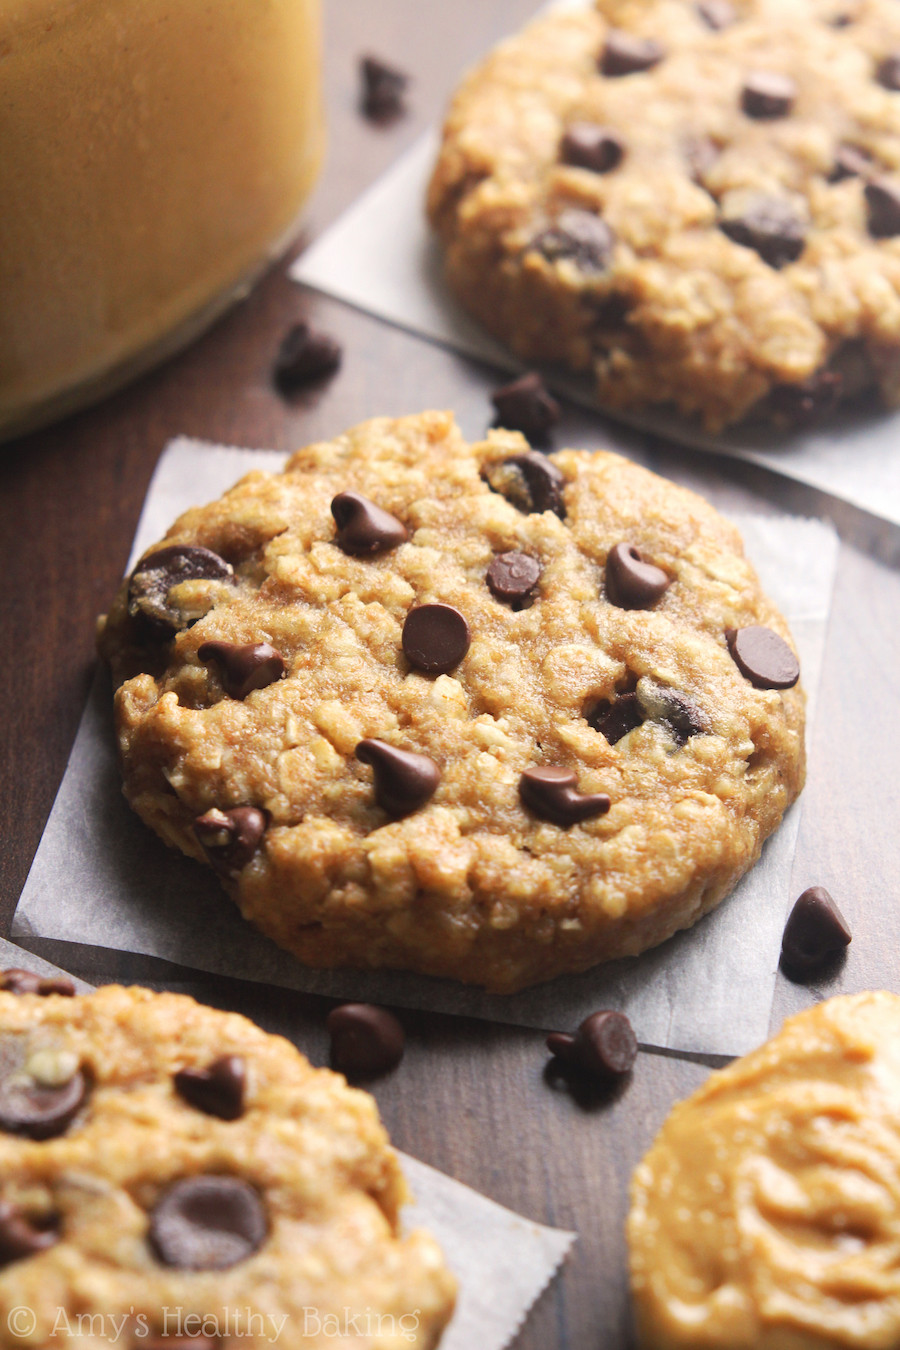 Choc Chip Oatmeal Cookies Healthy  Chocolate Chip Peanut Butter Oatmeal Cookies Recipe Video